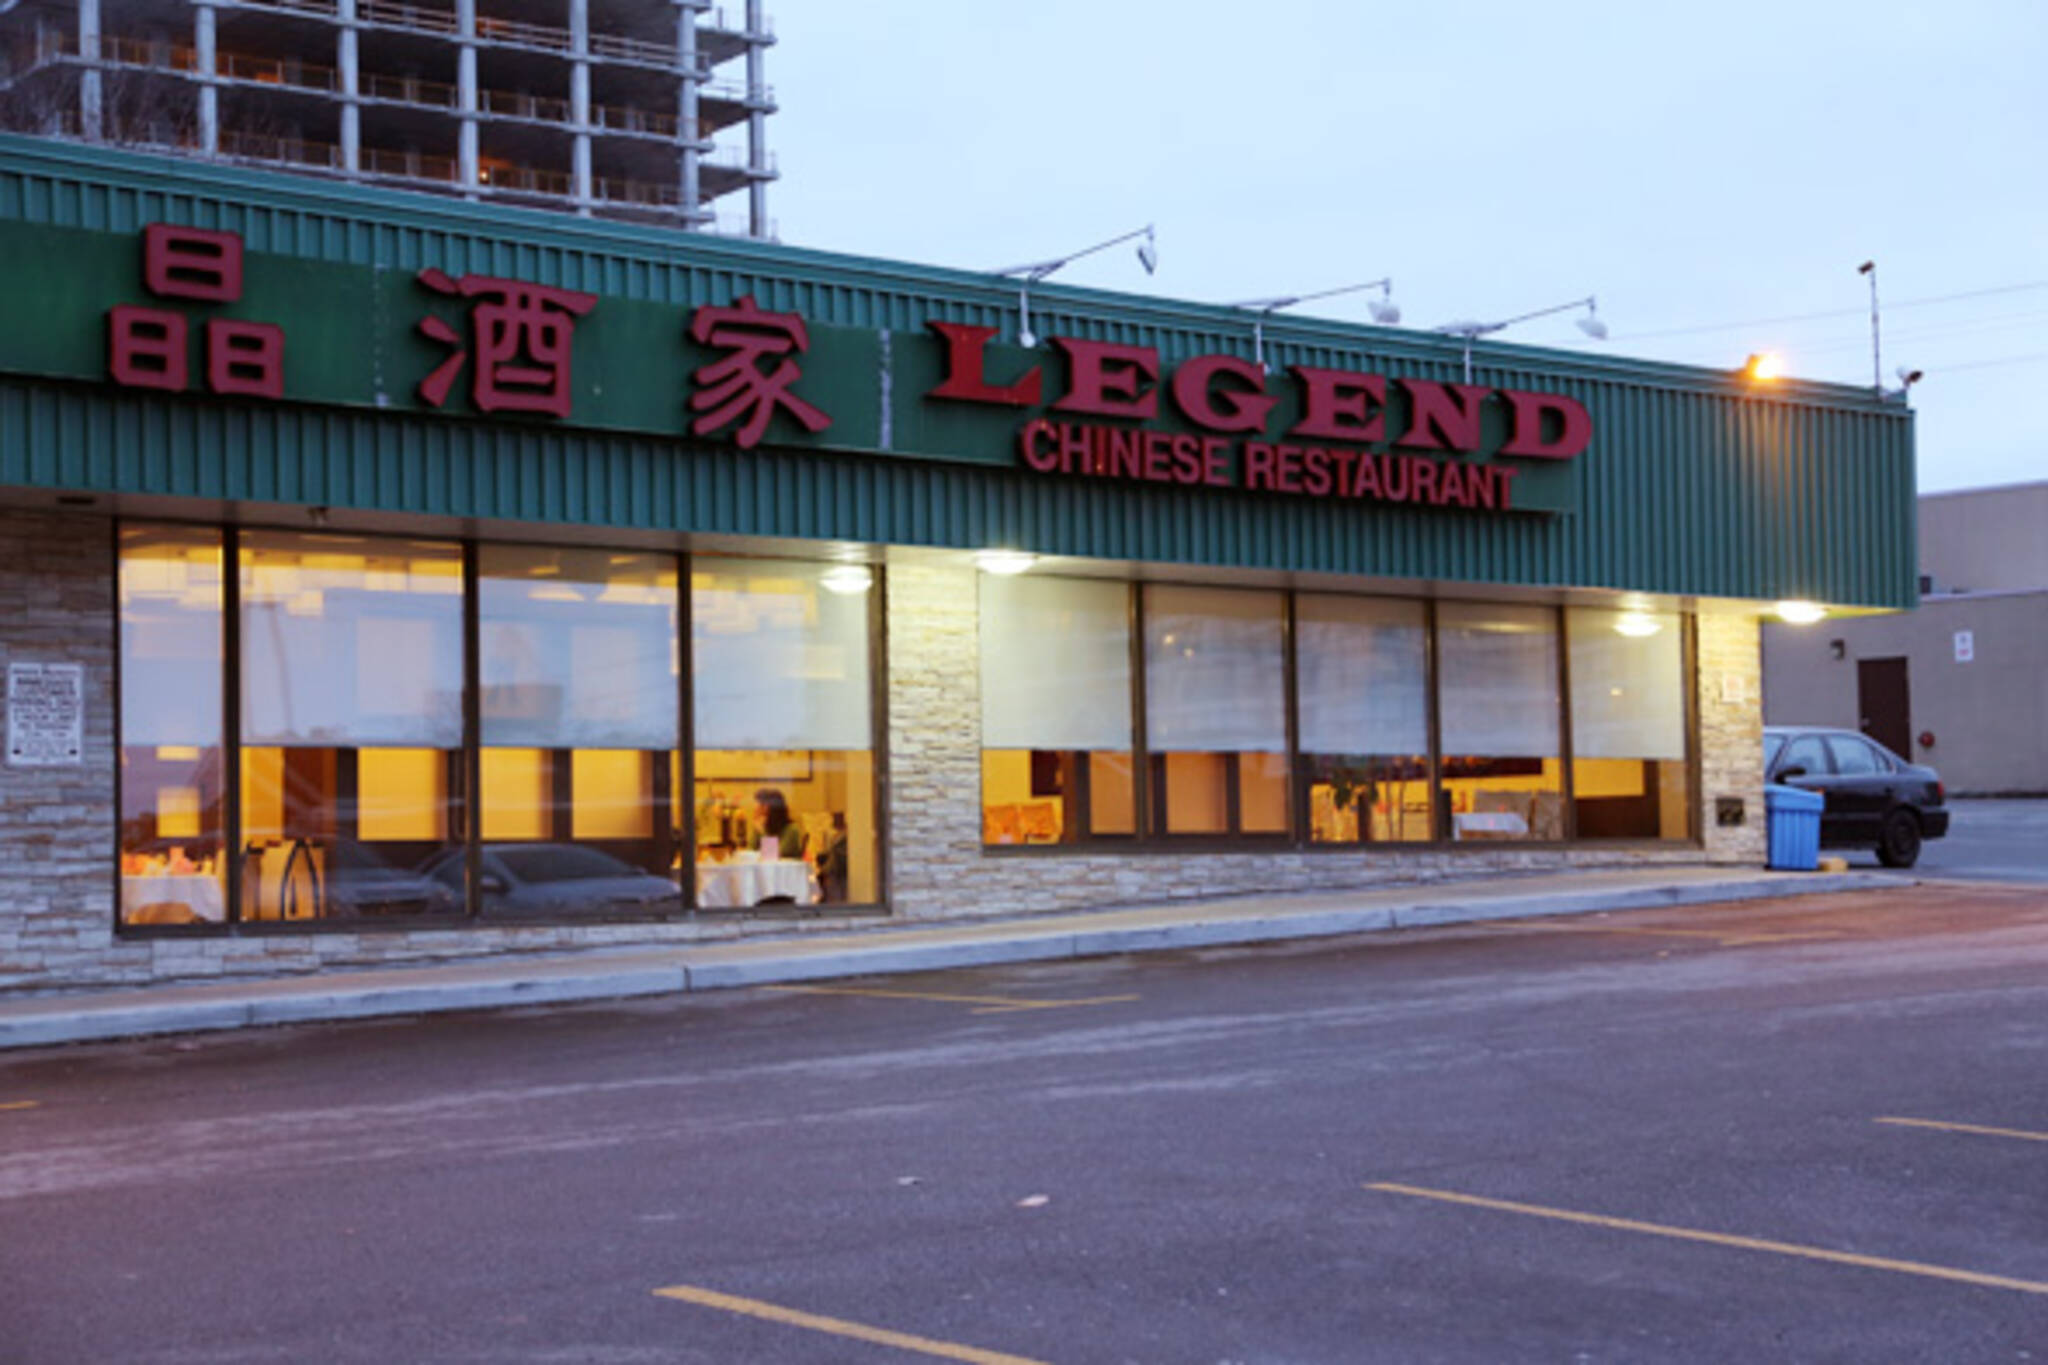 Legend Chinese Restaurant